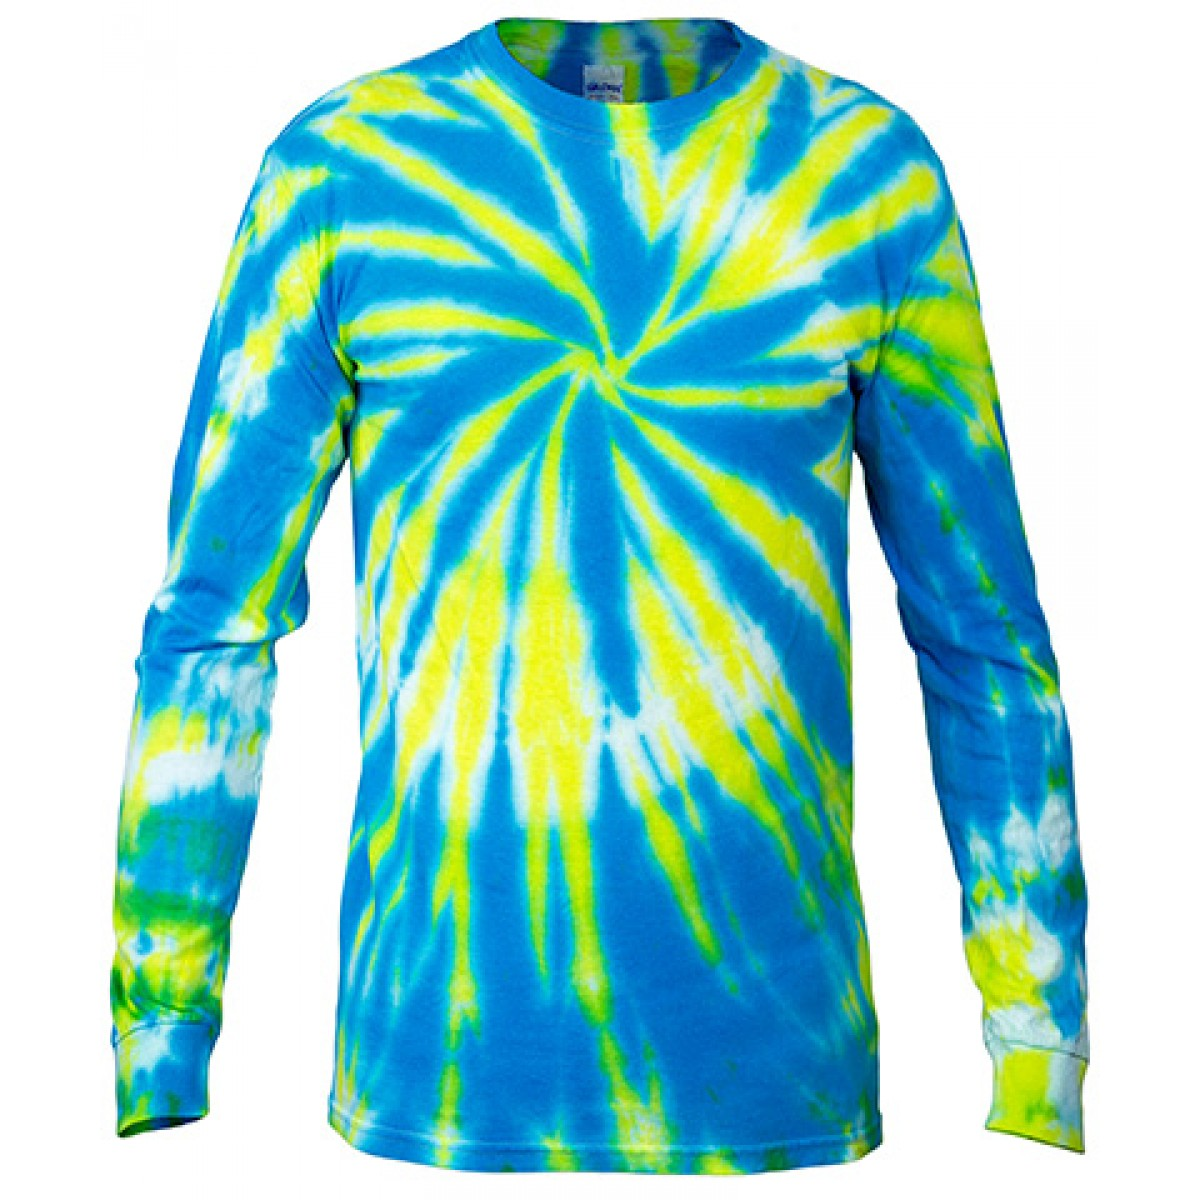 Multi Color Tie-Dye Long Sleeve Shirt